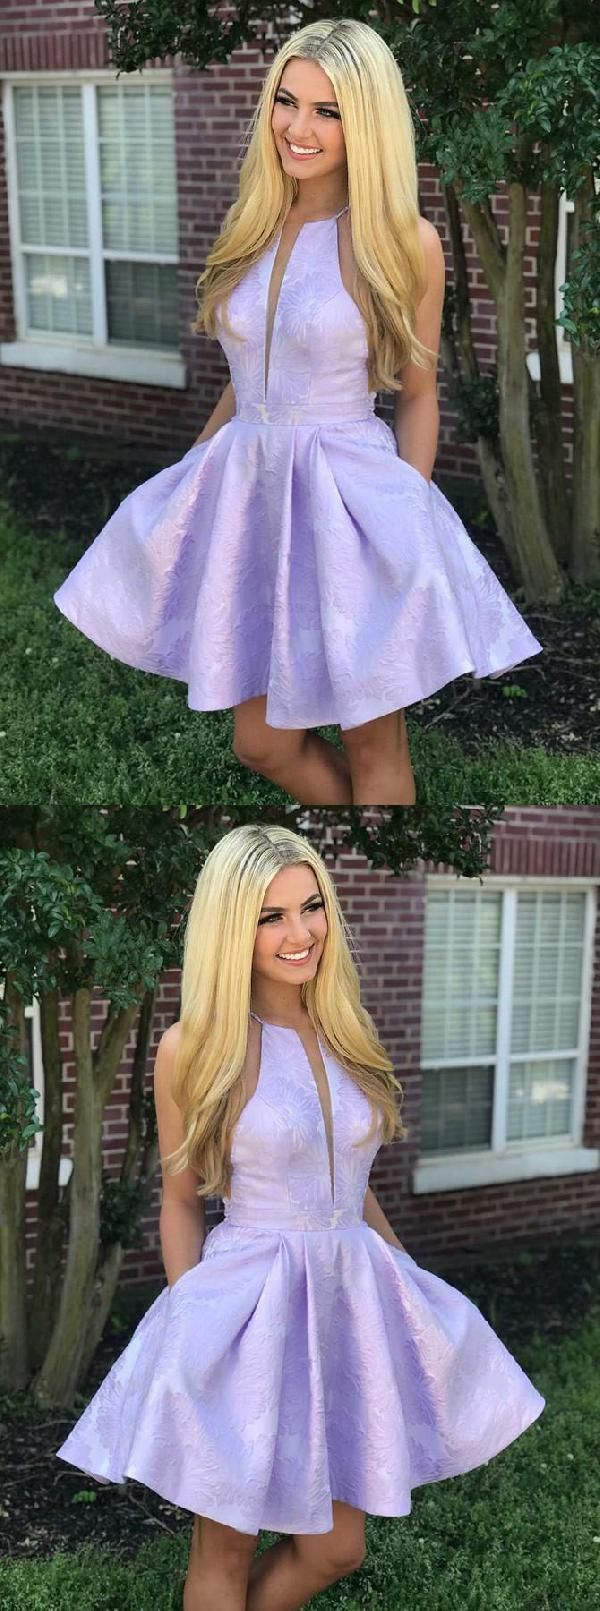 099a7fc1917 Soft Party Dress A-Line A-Line Crew Above-Knee Lilac Satin Printed  Homecoming Dress With Pockets